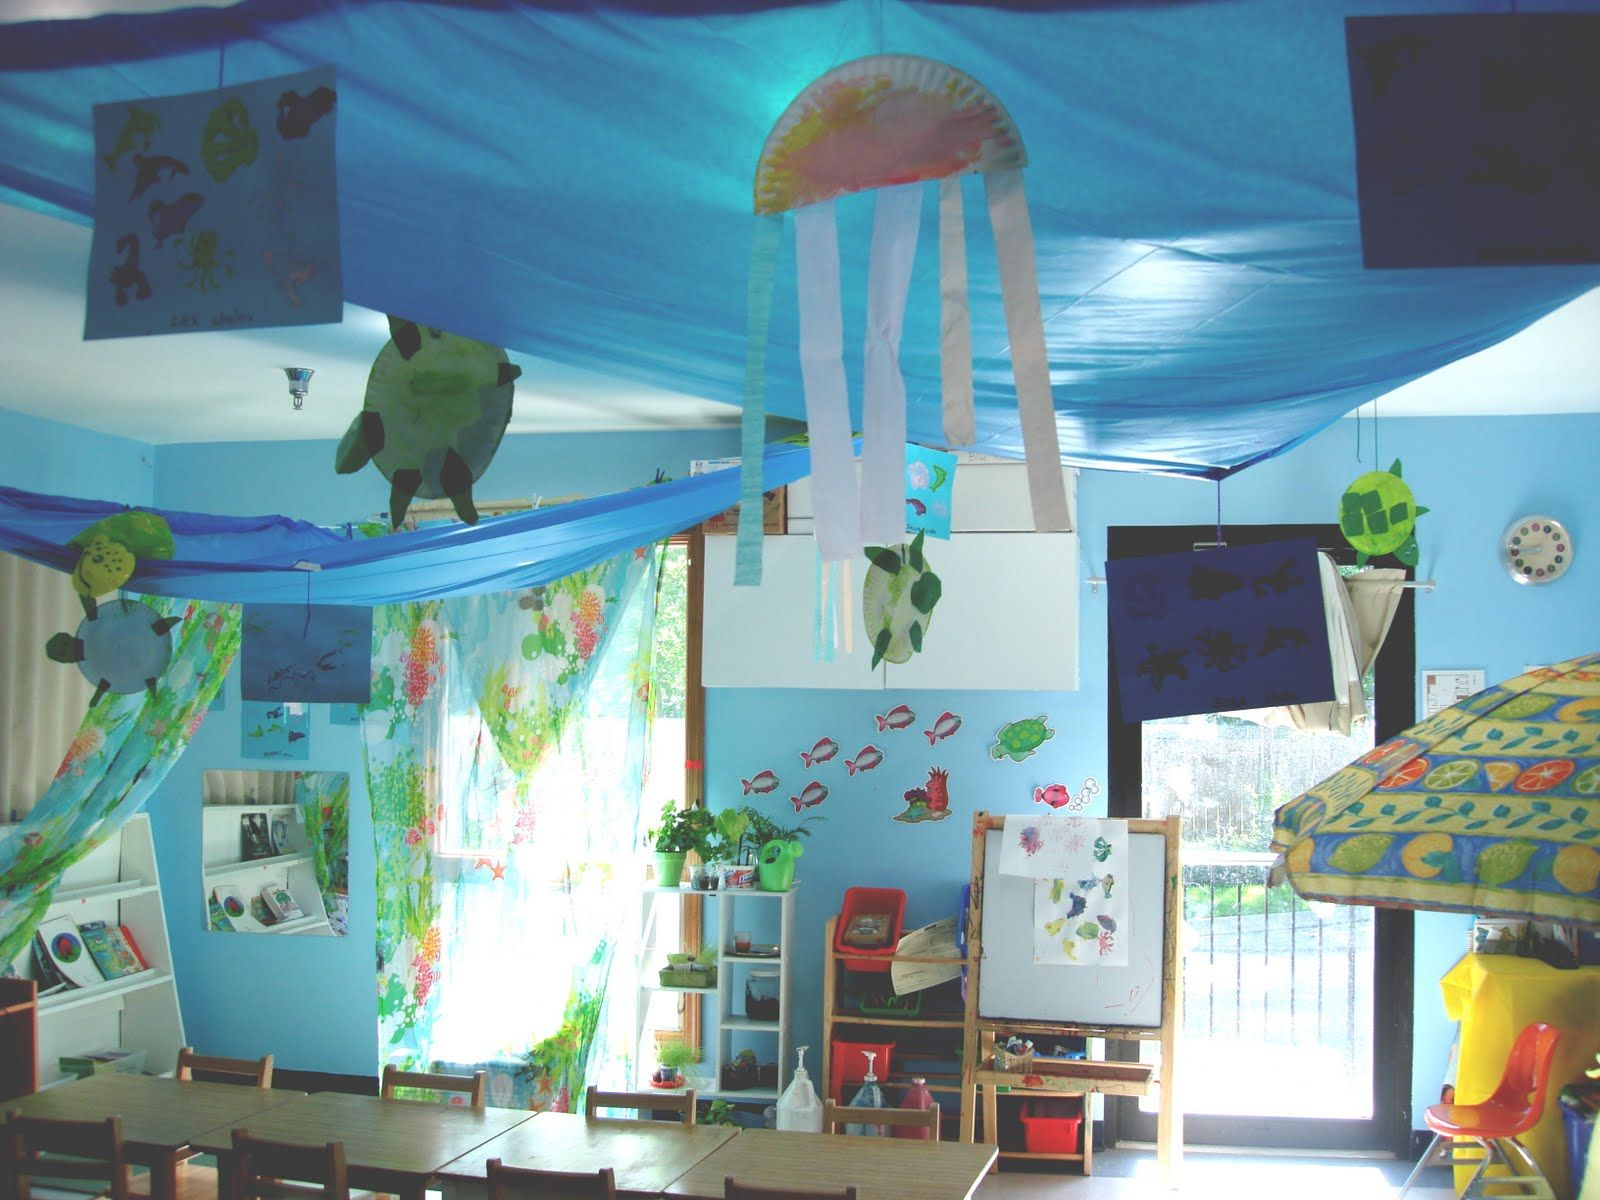 Classroom Board Ideas For Preschool ~ Making the ceiling look like an ocean ideas for